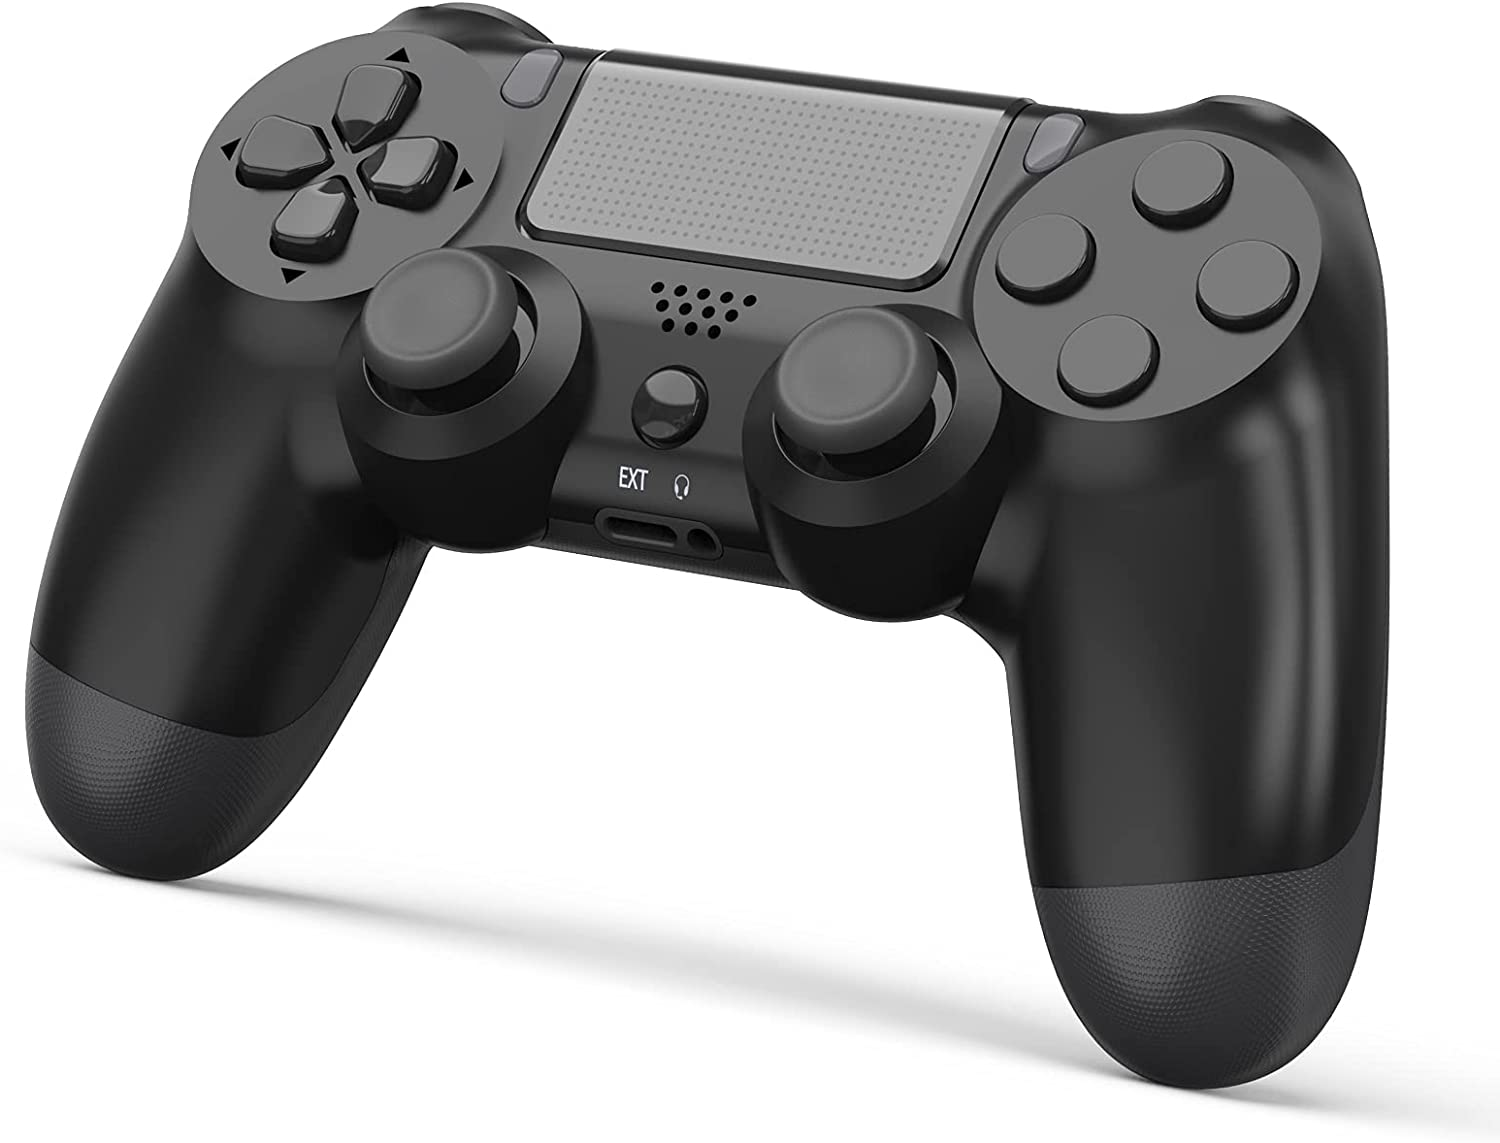 RXZ Max 77% OFF Wireless for PS4 Controller Vibrat Dual Sales of SALE items from new works